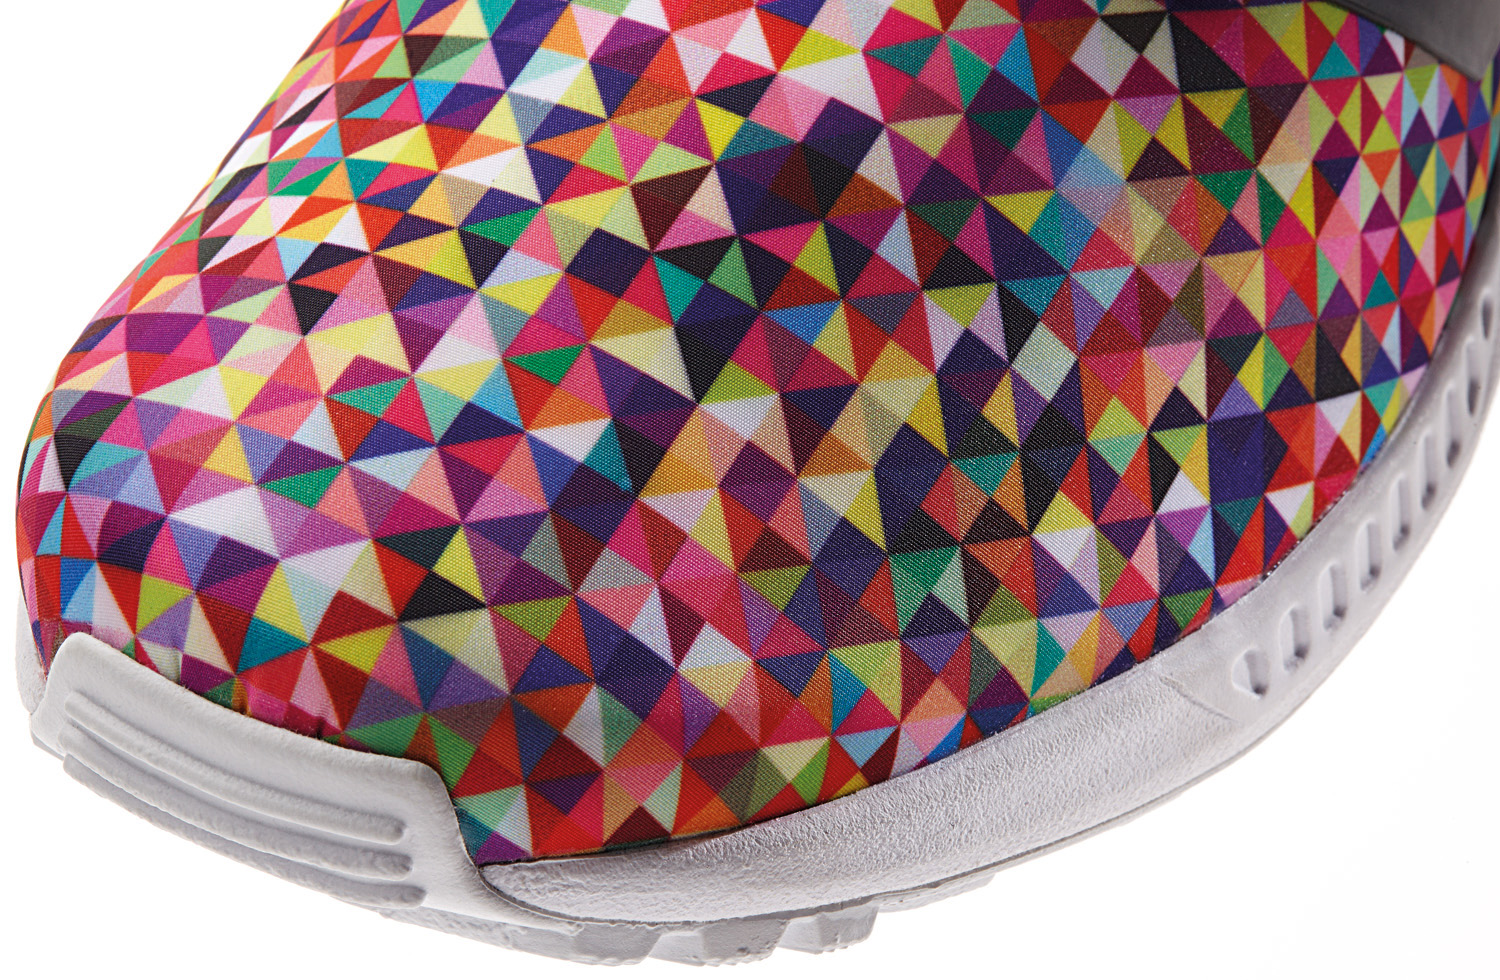 adidas ZX FLUX Photo Print Pack 12